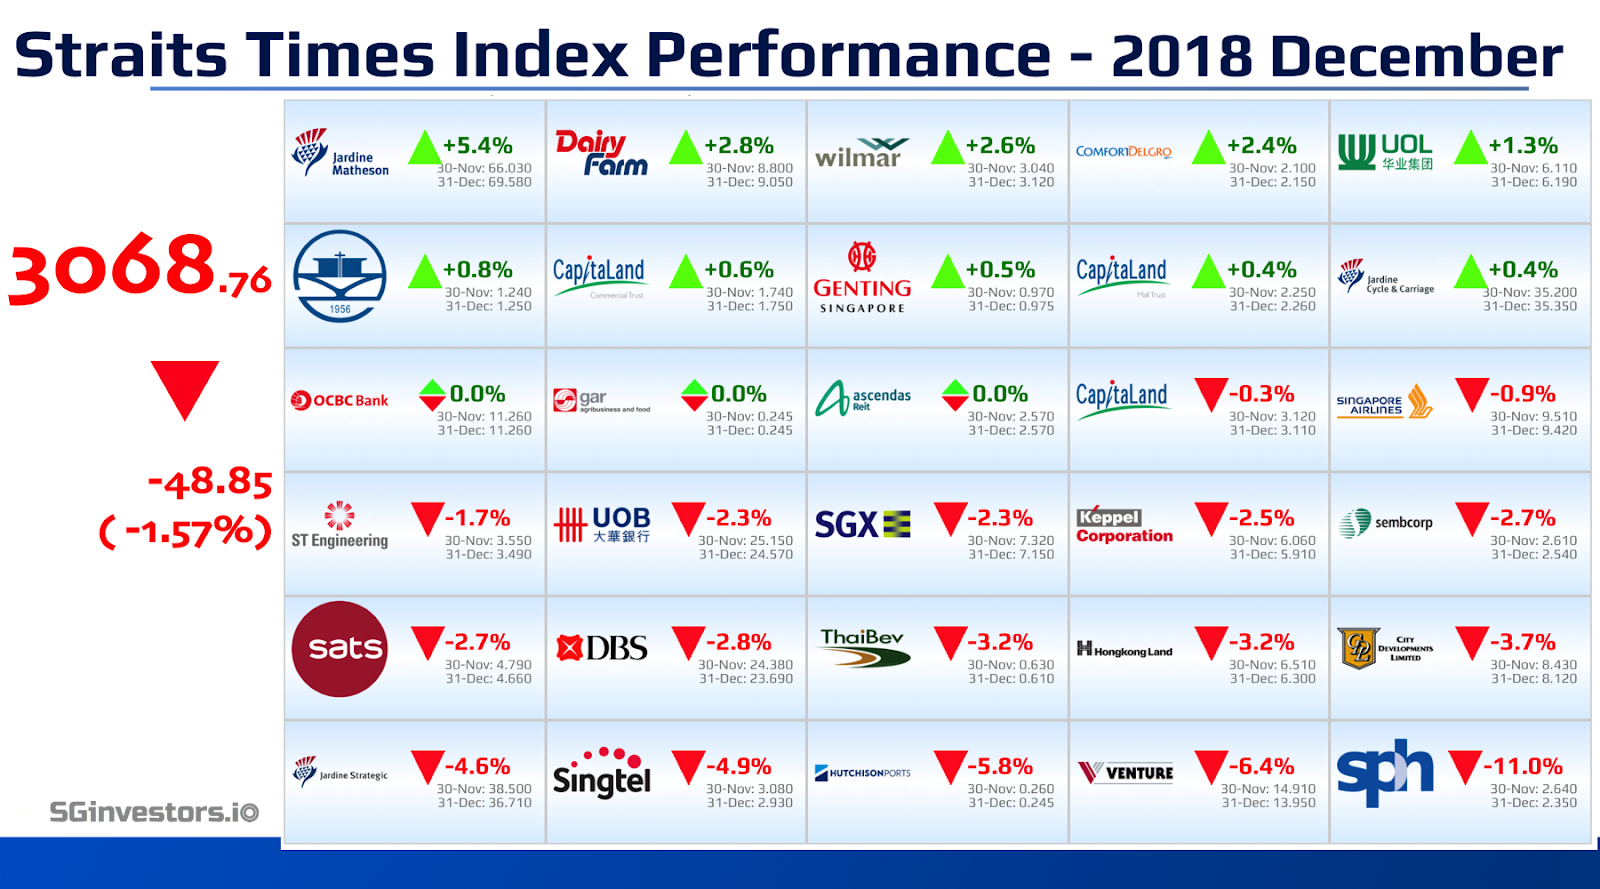 Performance of Straits Times Index (STI) Constituents in December 2018